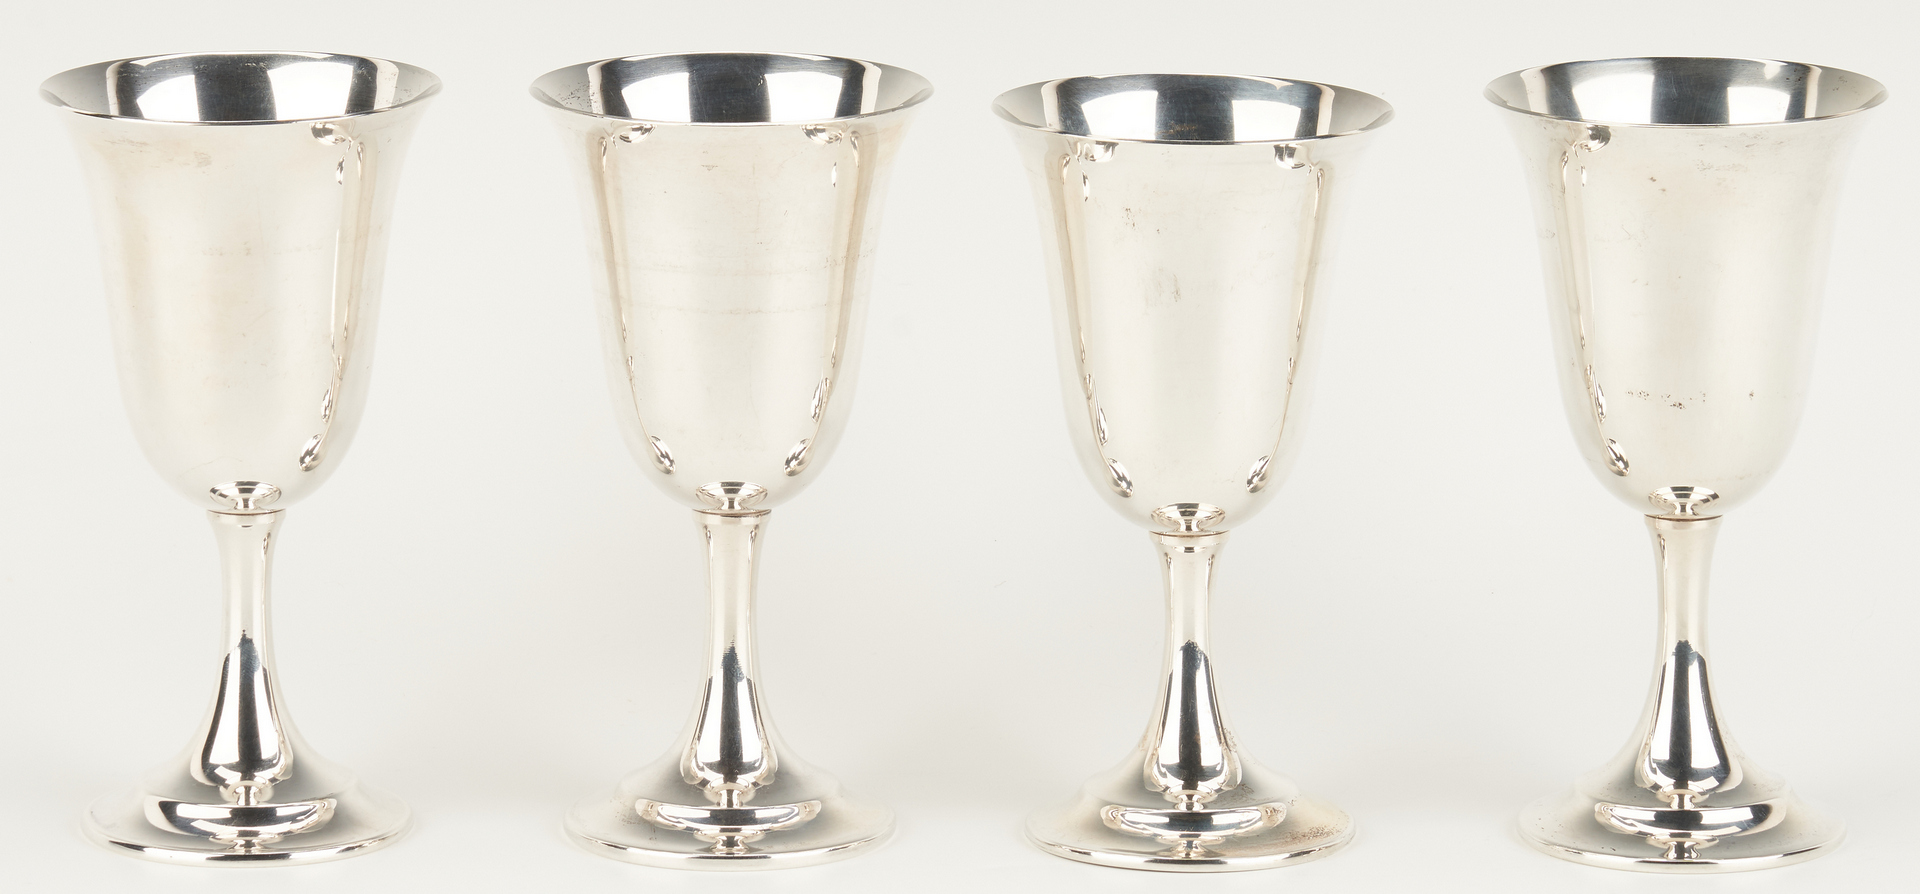 Lot 804:  8 International Lord Saybrook Sterling Silver Goblets